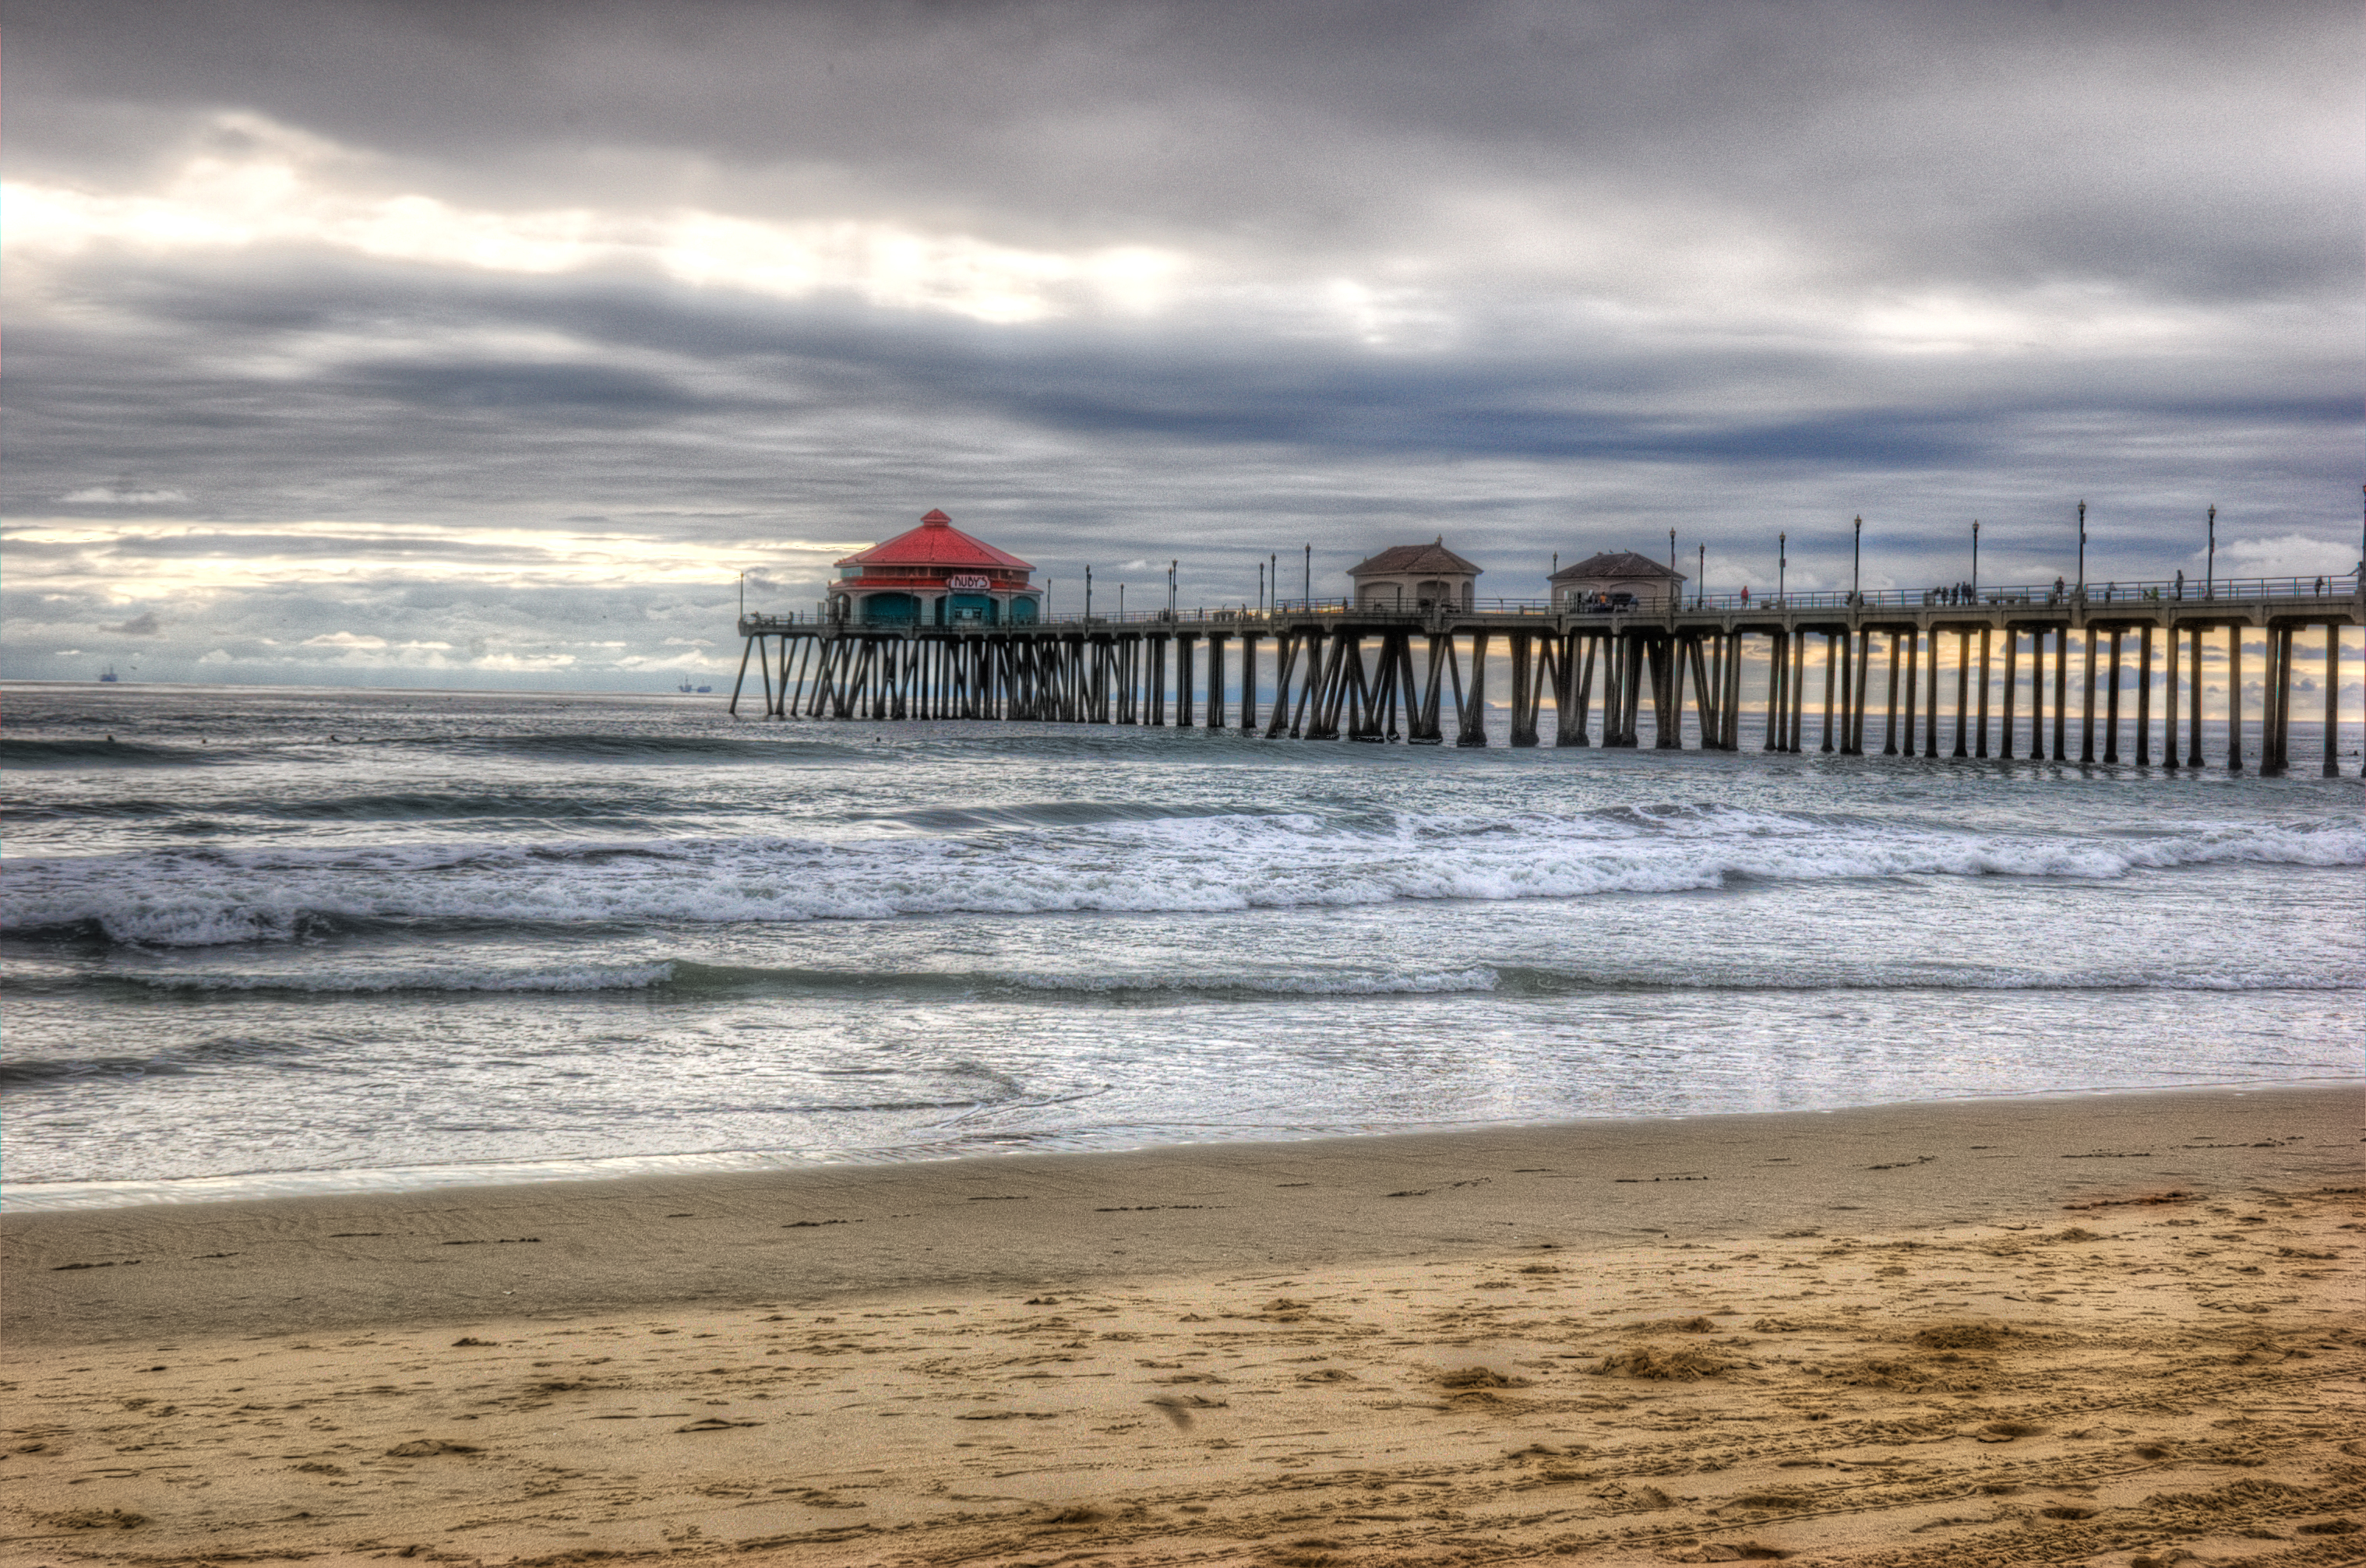 Orange county singles california These Are The 10 Best Cities For Singles In California For - HomeSnacks